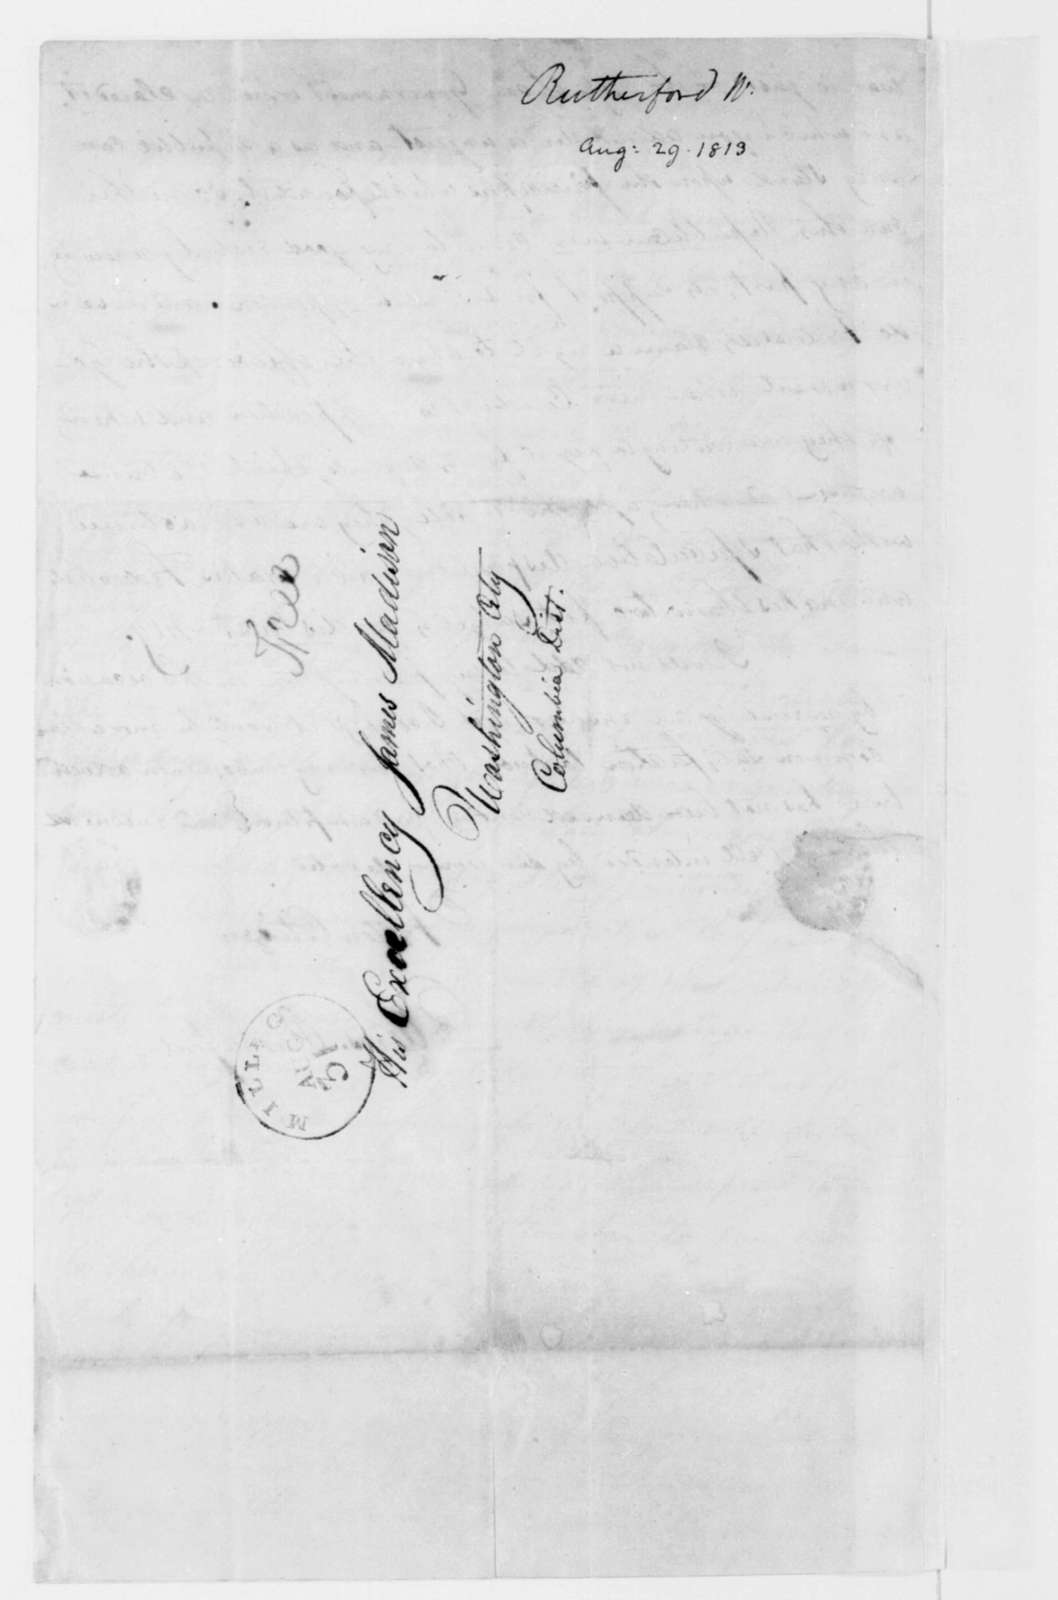 W. Rutherford to James Madison, August 29, 1813.